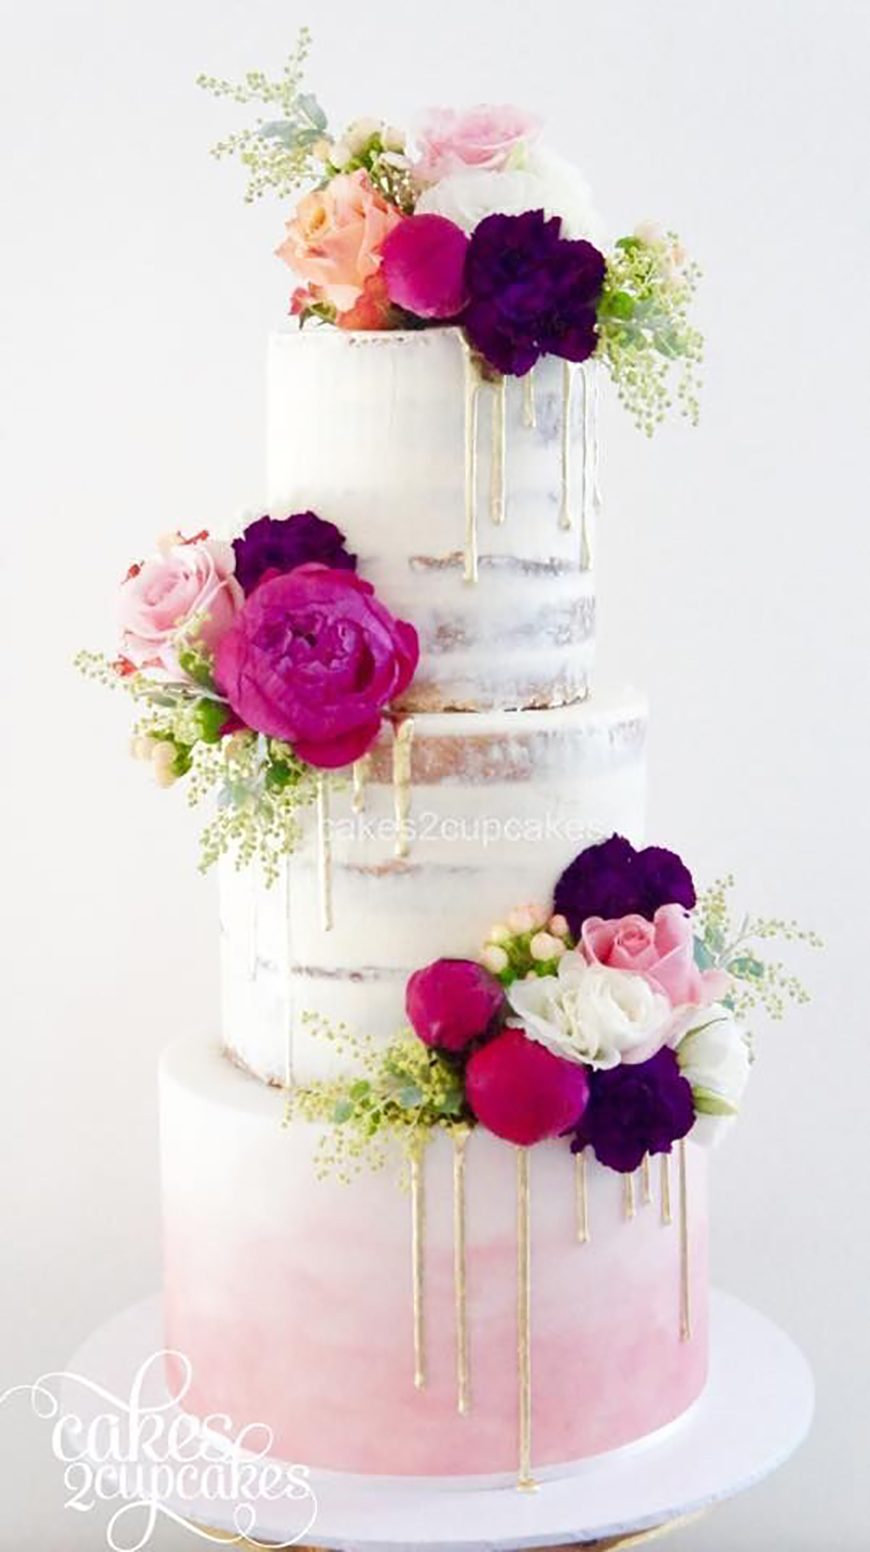 The Hottest Wedding Trends For 2017 - Cakes   CHWV